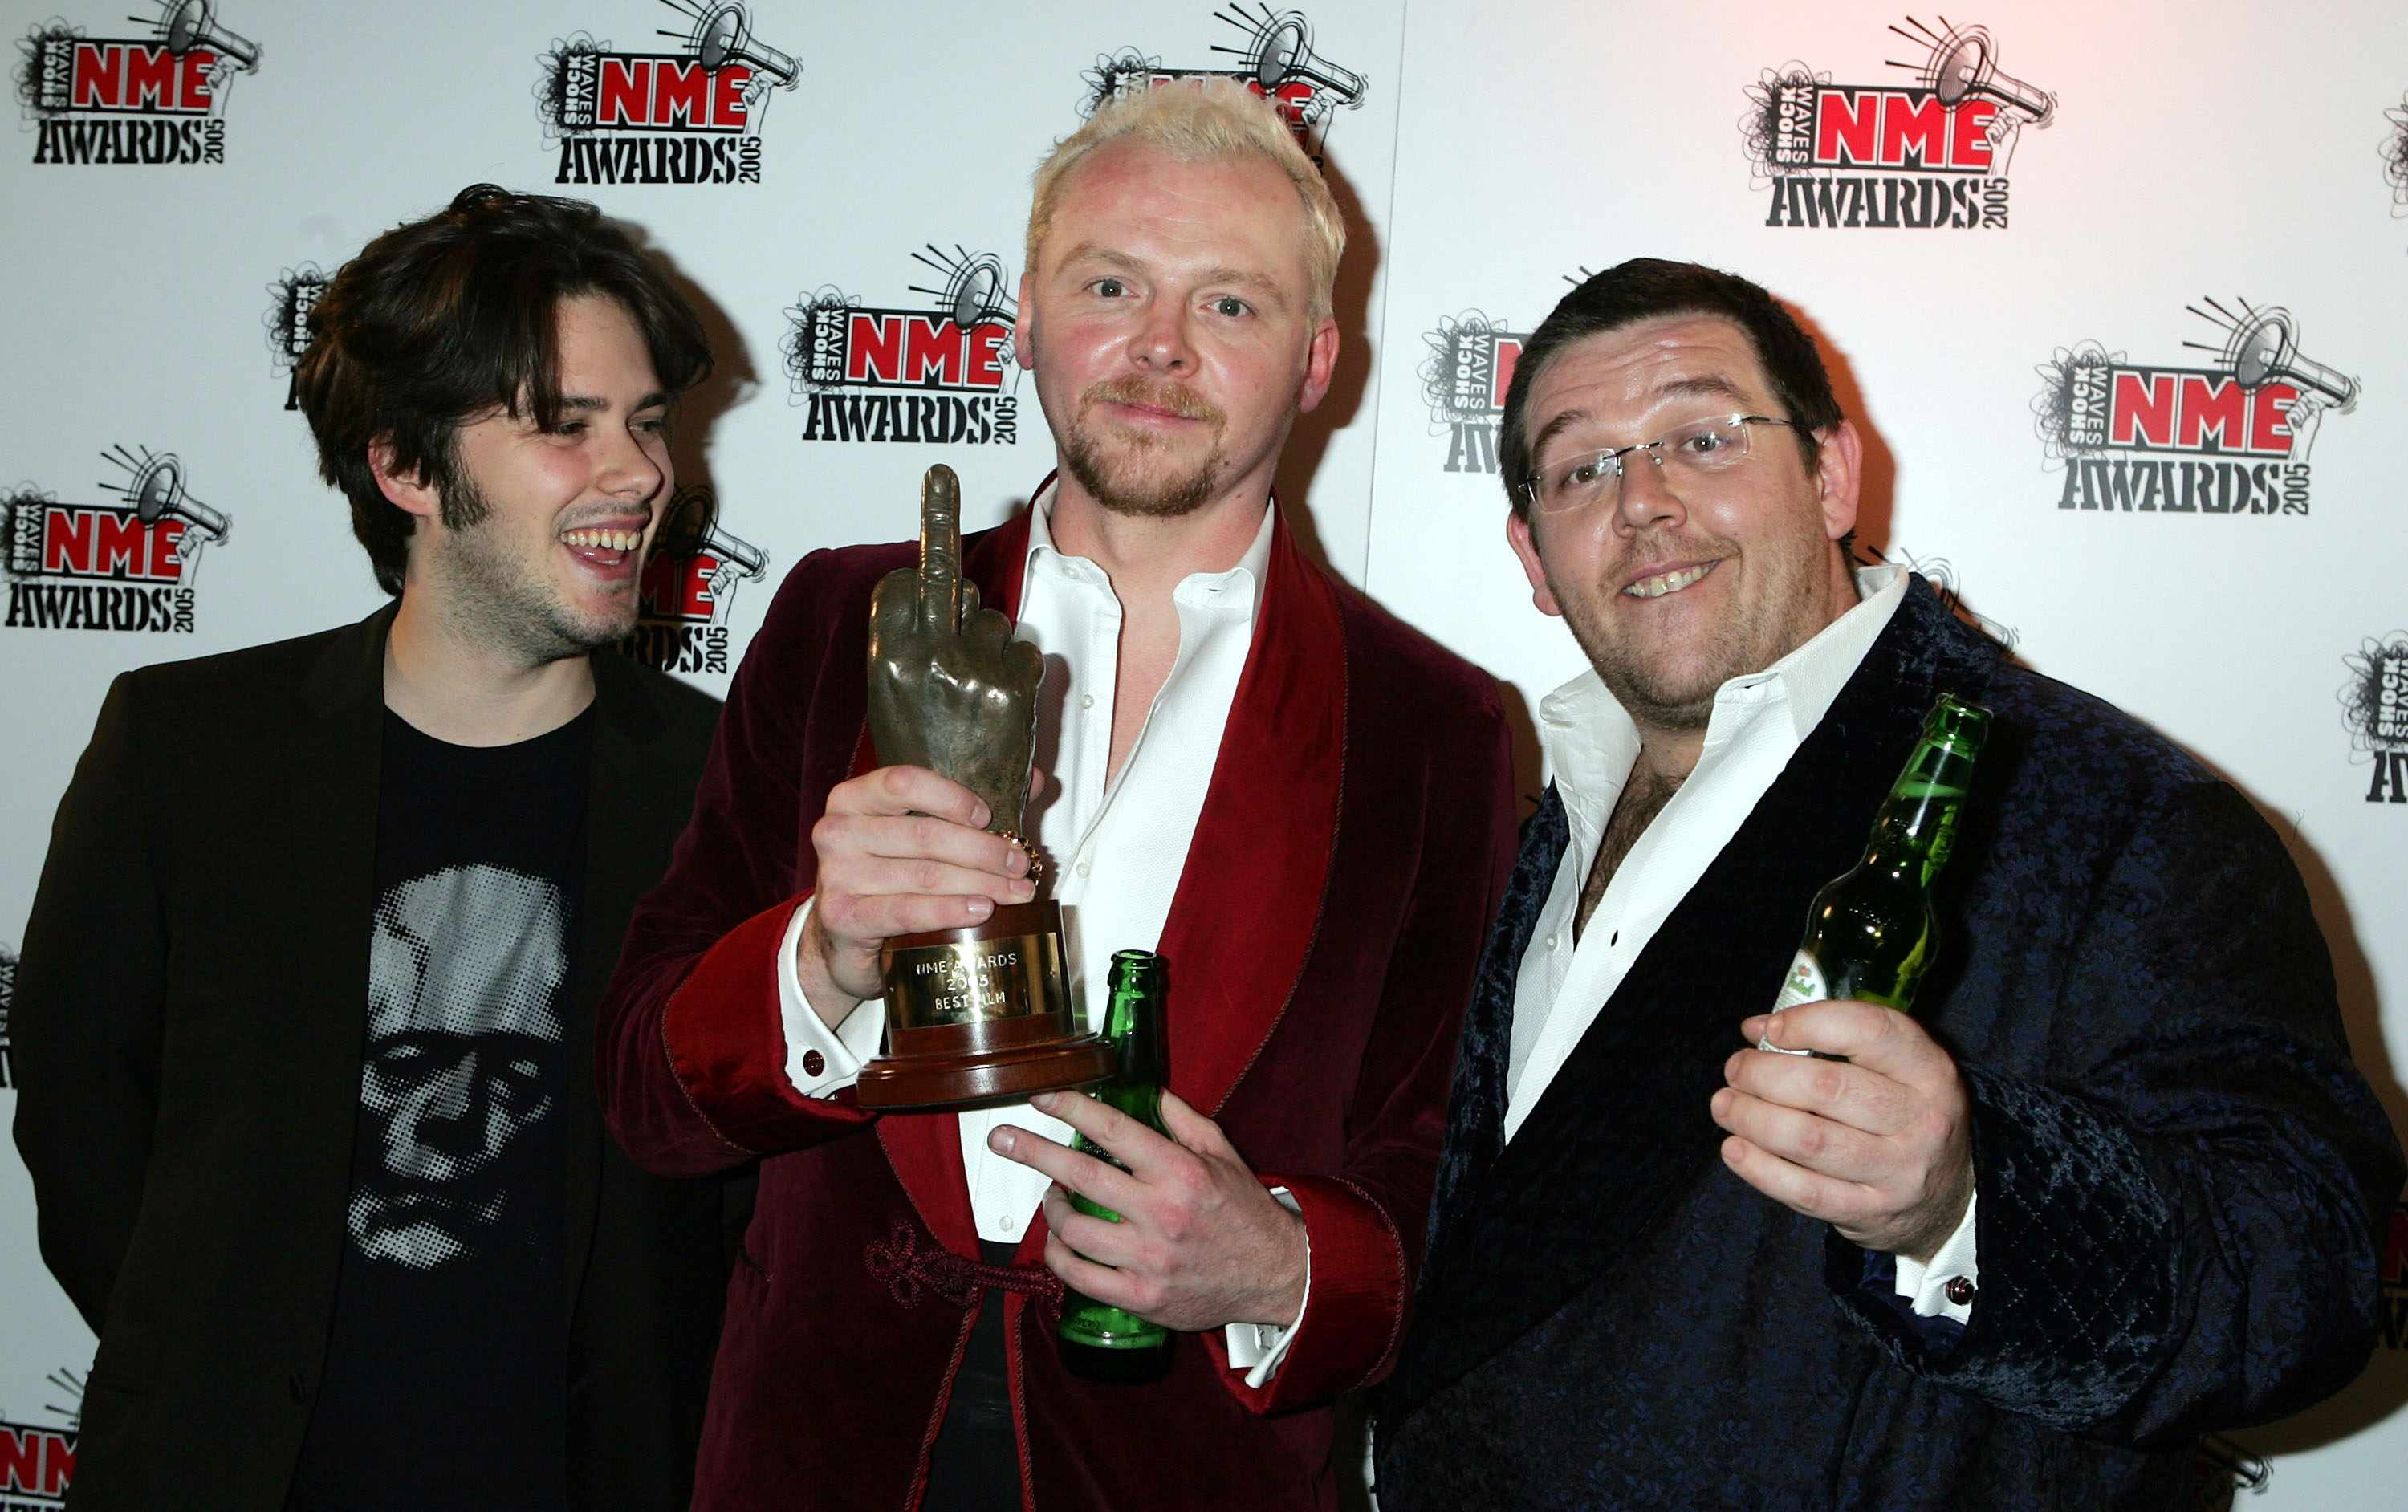 LONDON - FEBRUARY 17:  Simon Pegg (C) from the film Shaun Of The Dead poses in the Awards Room with the award for Best Film at The Shockwaves NME Awards 2005 at Hammersmith Palais on February 17, 2005 in London. The annual music awards sees winners decided by an NME readers' poll. (Photo by Jo Hale/Getty Images)